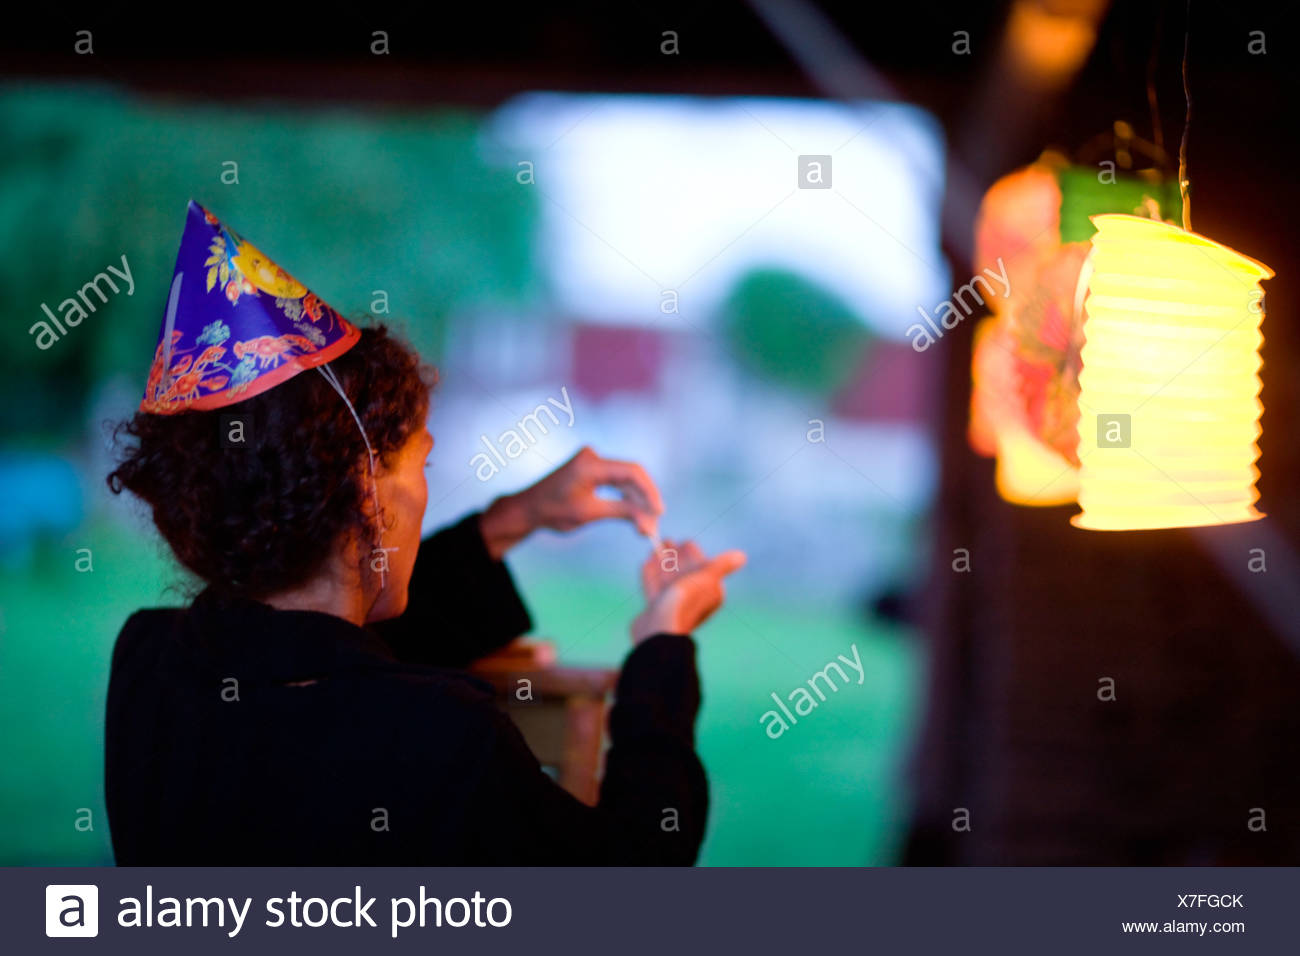 Woman wearing party hat standing by illuminated lantern - Stock Image